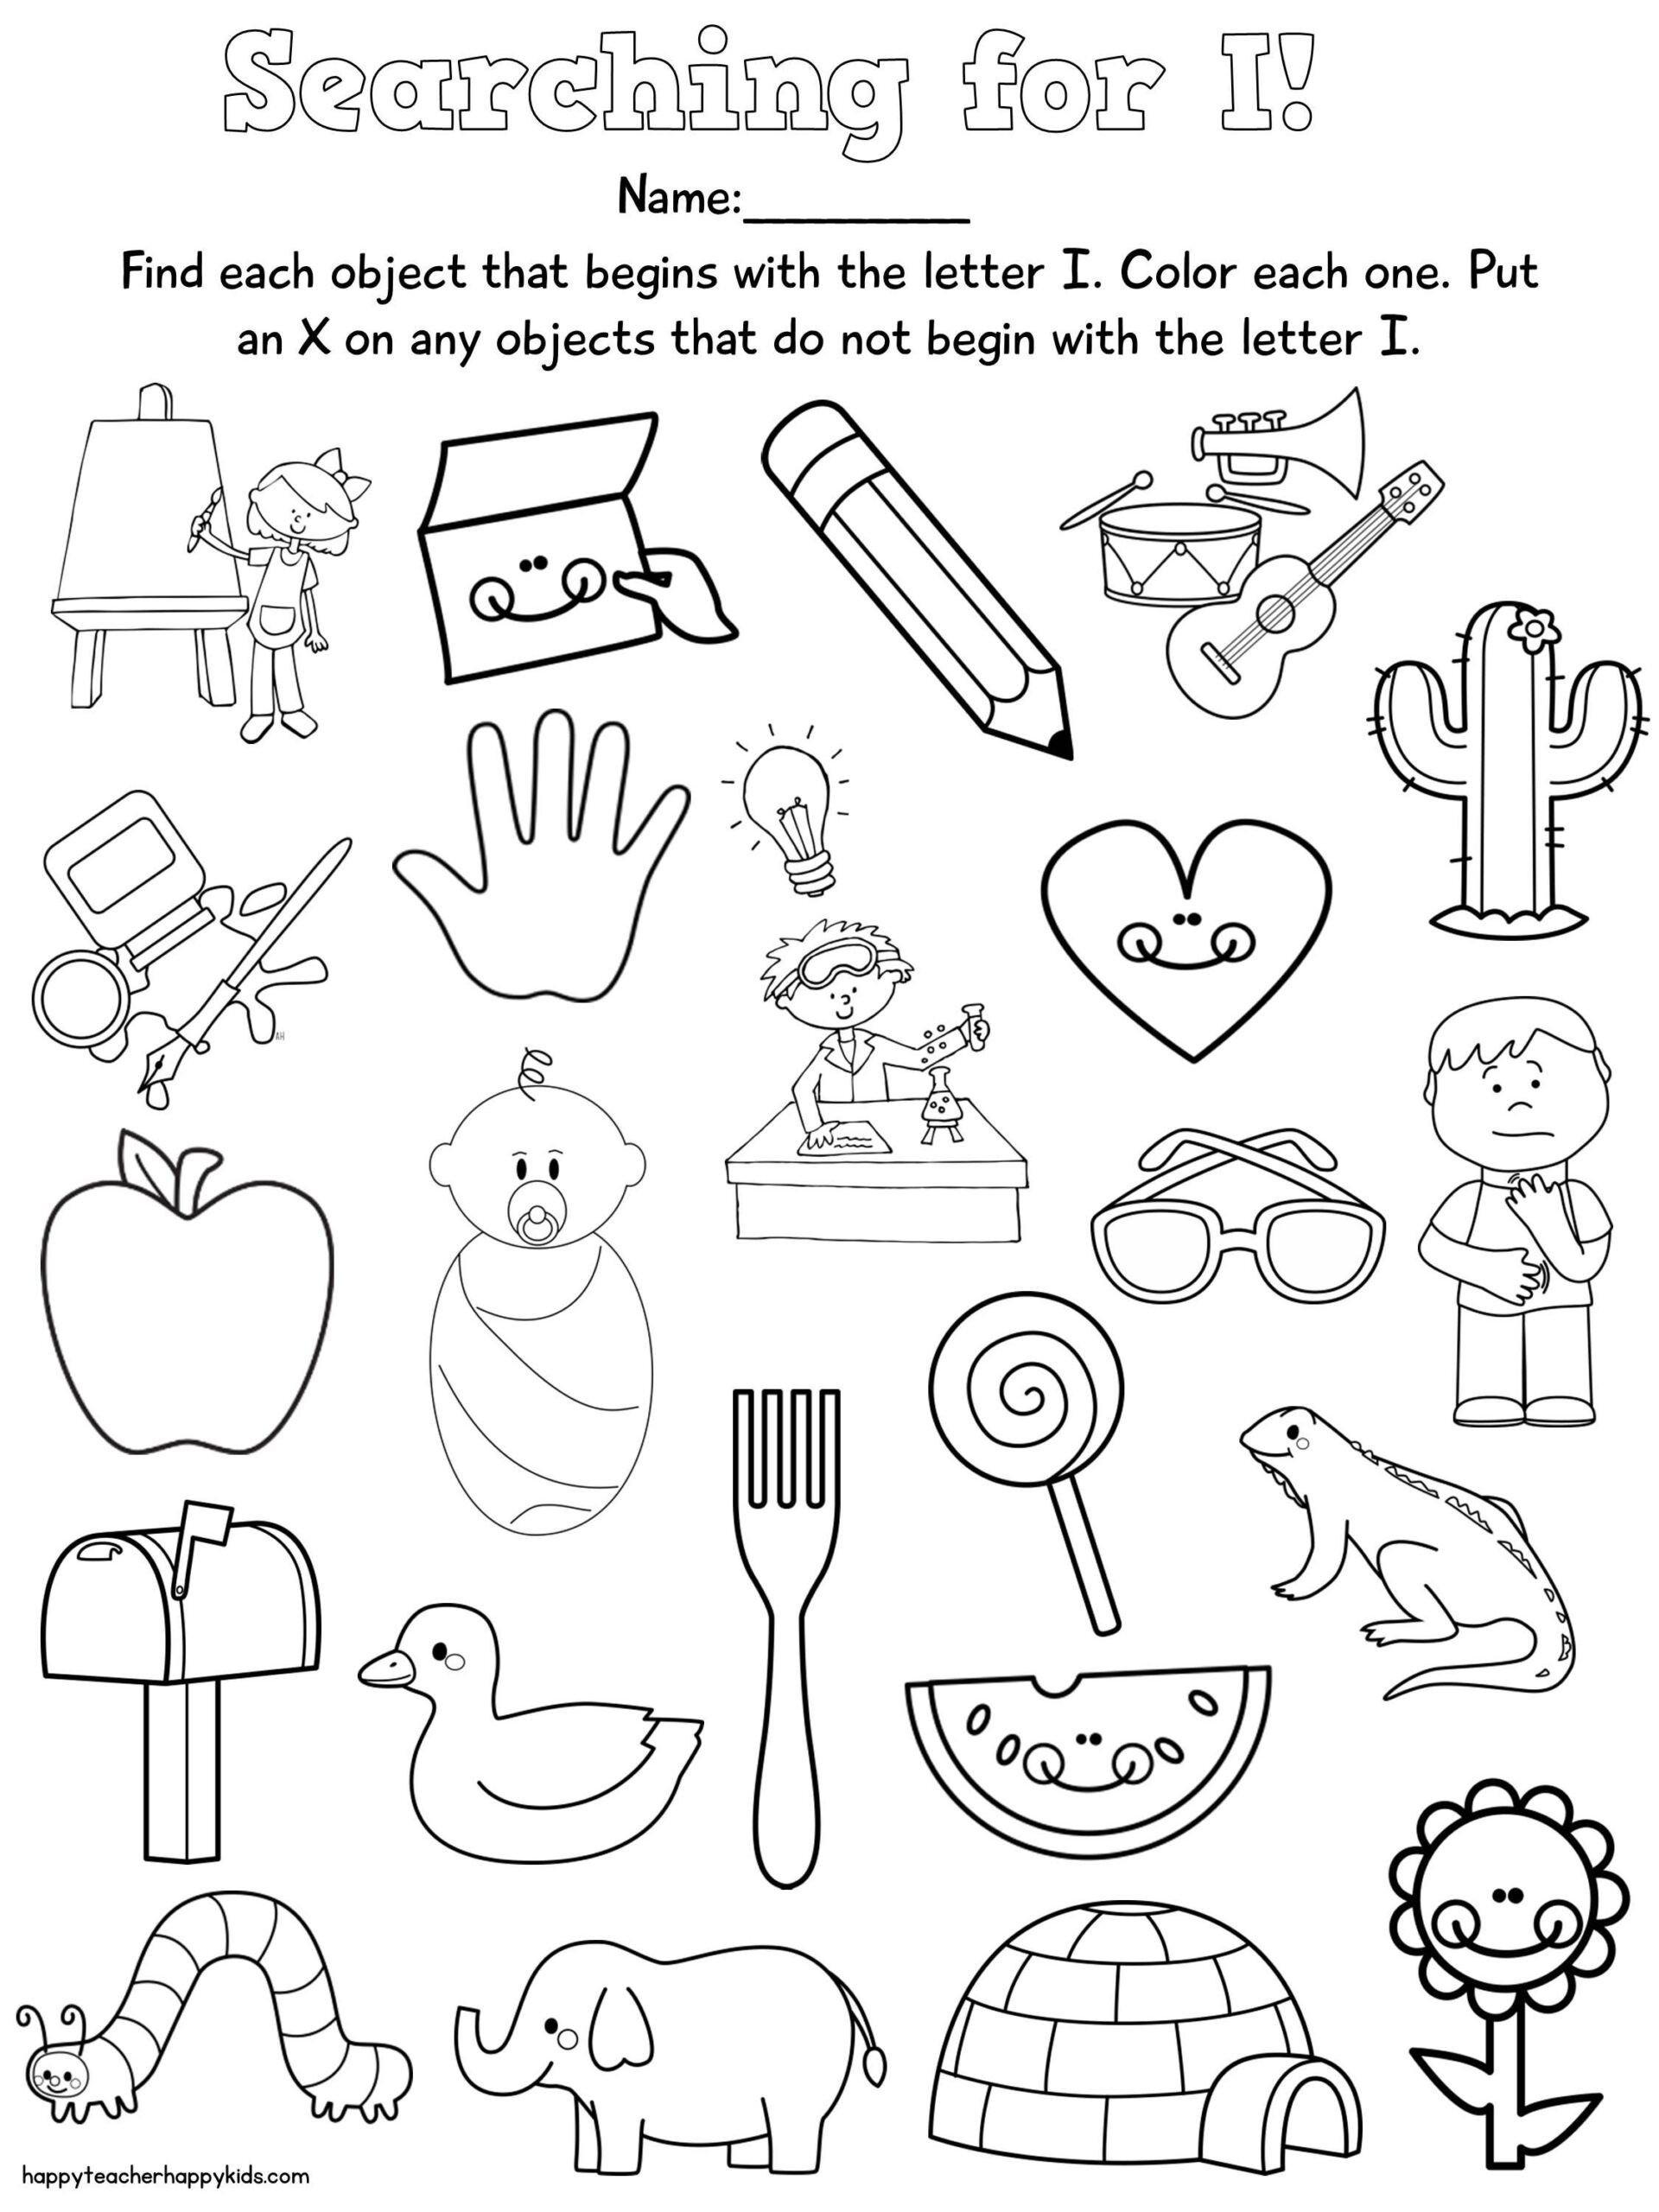 Digraph Worksheets for First Grade Th Digraph Worksheet 1st Grade Printable – Kingandsullivan